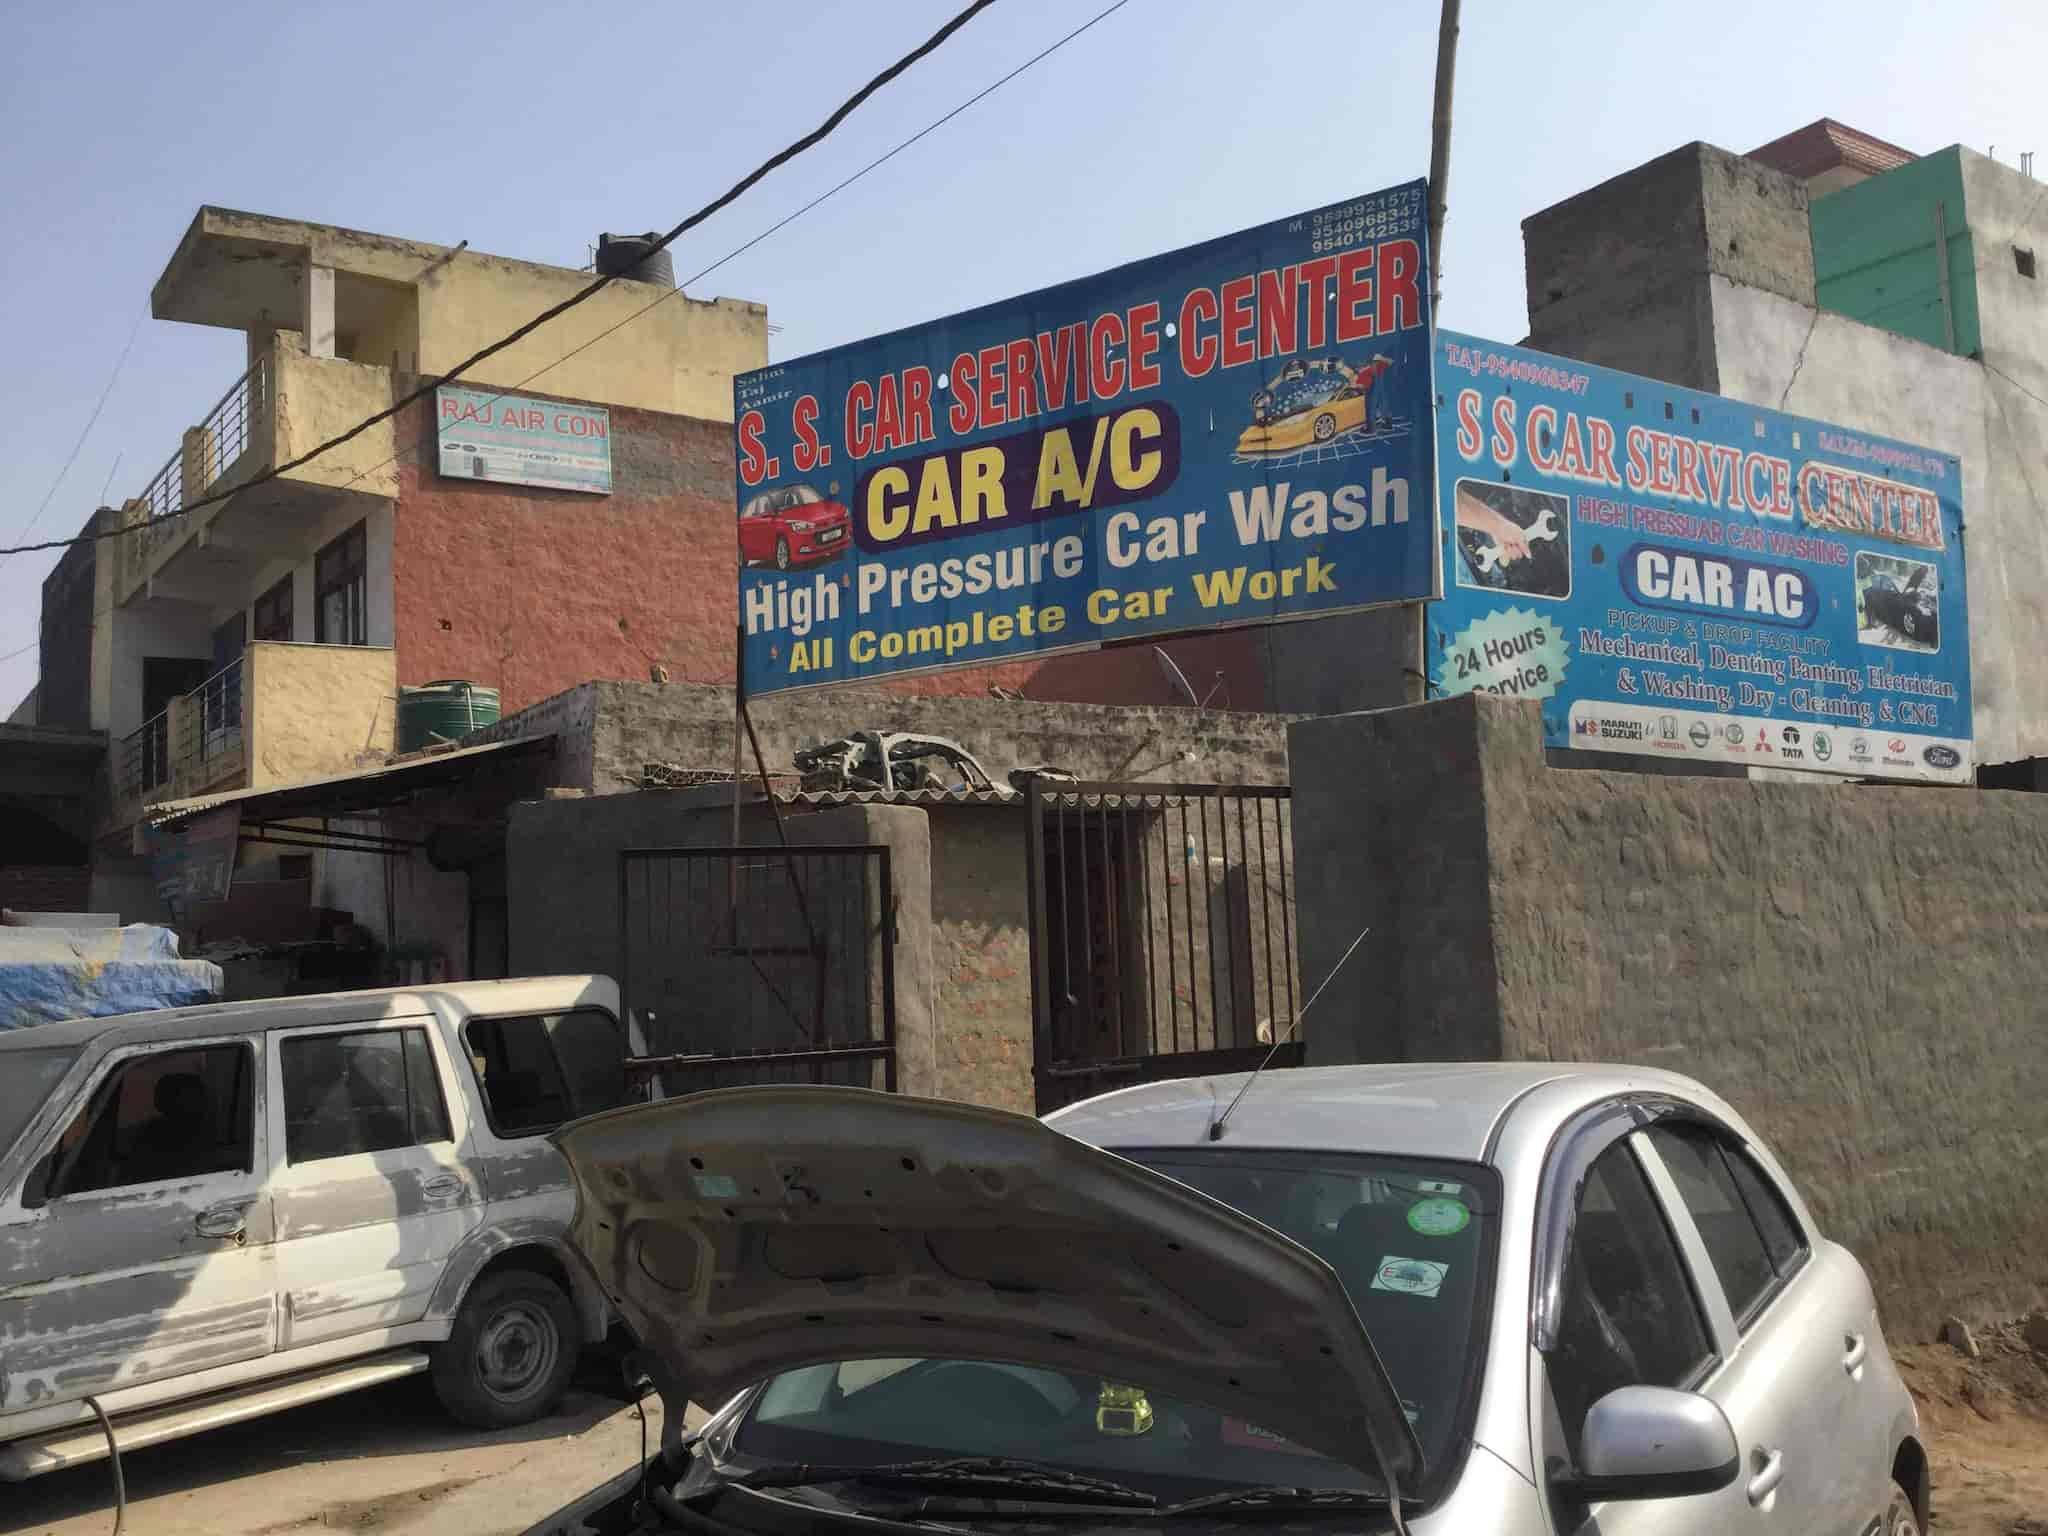 S S Car Service Center Noida Sector 122 Car Repair Services In Noida Delhi Justdial